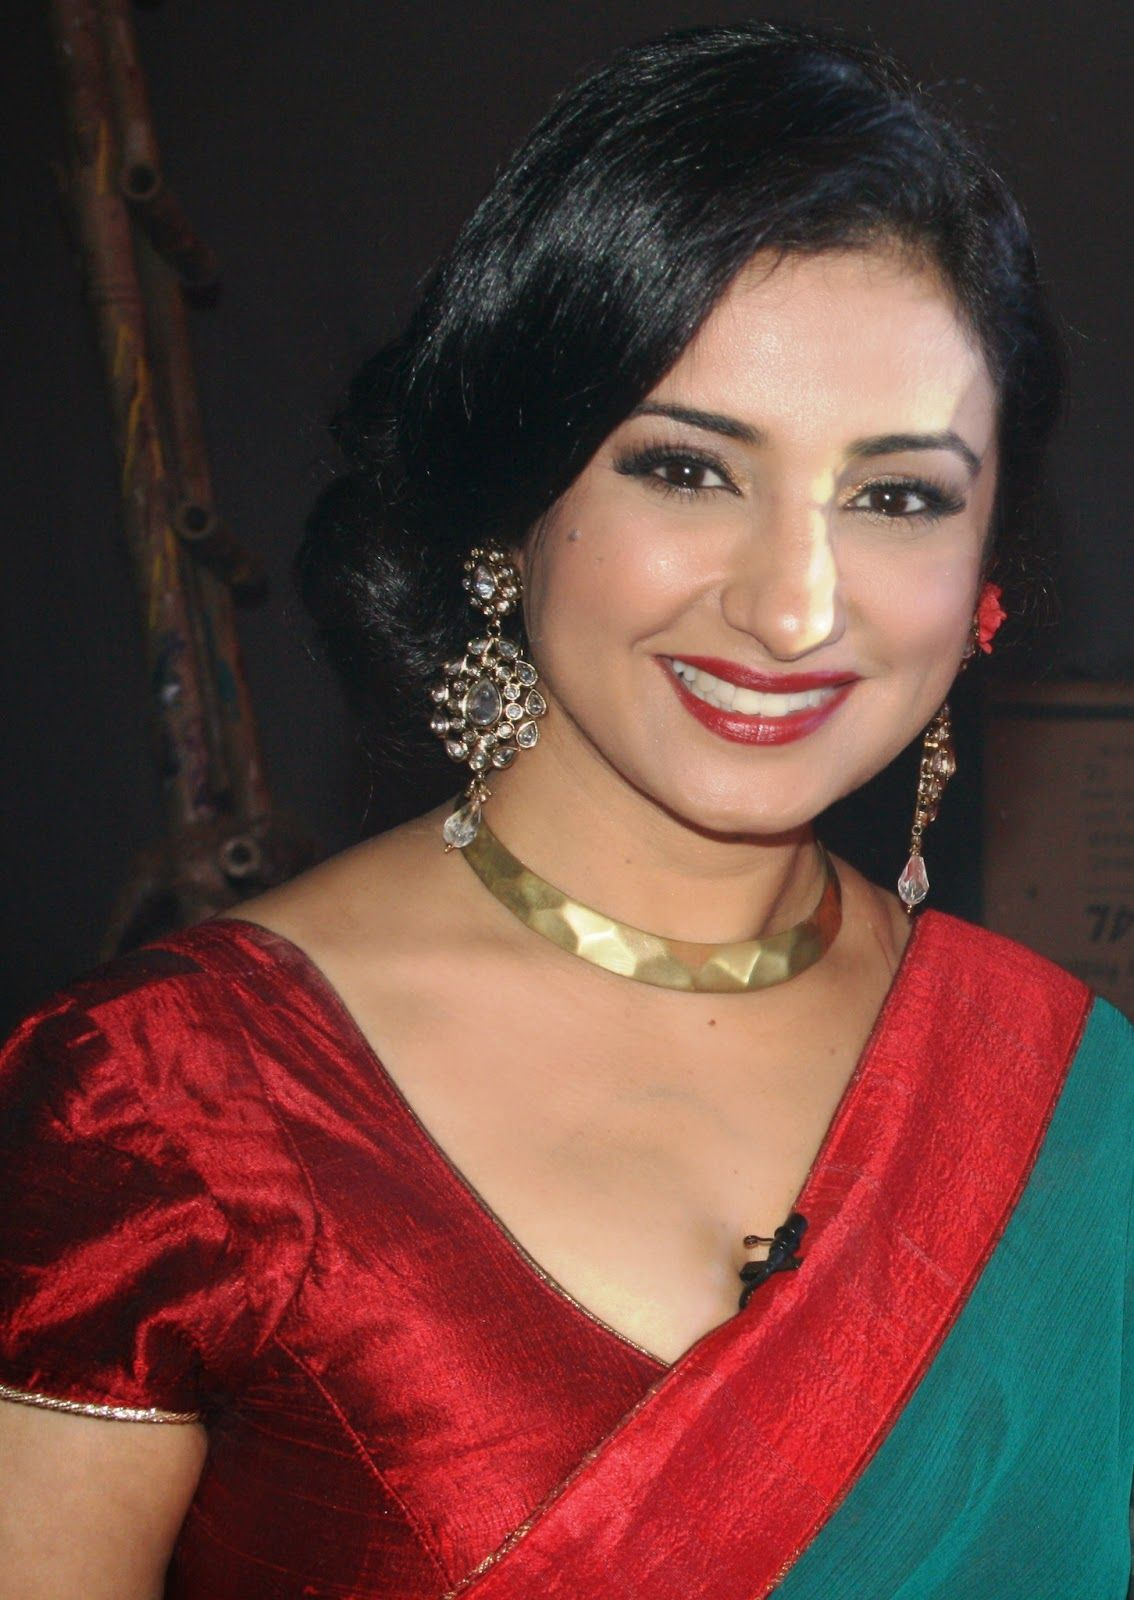 Pity, that Divya dutta porn photo